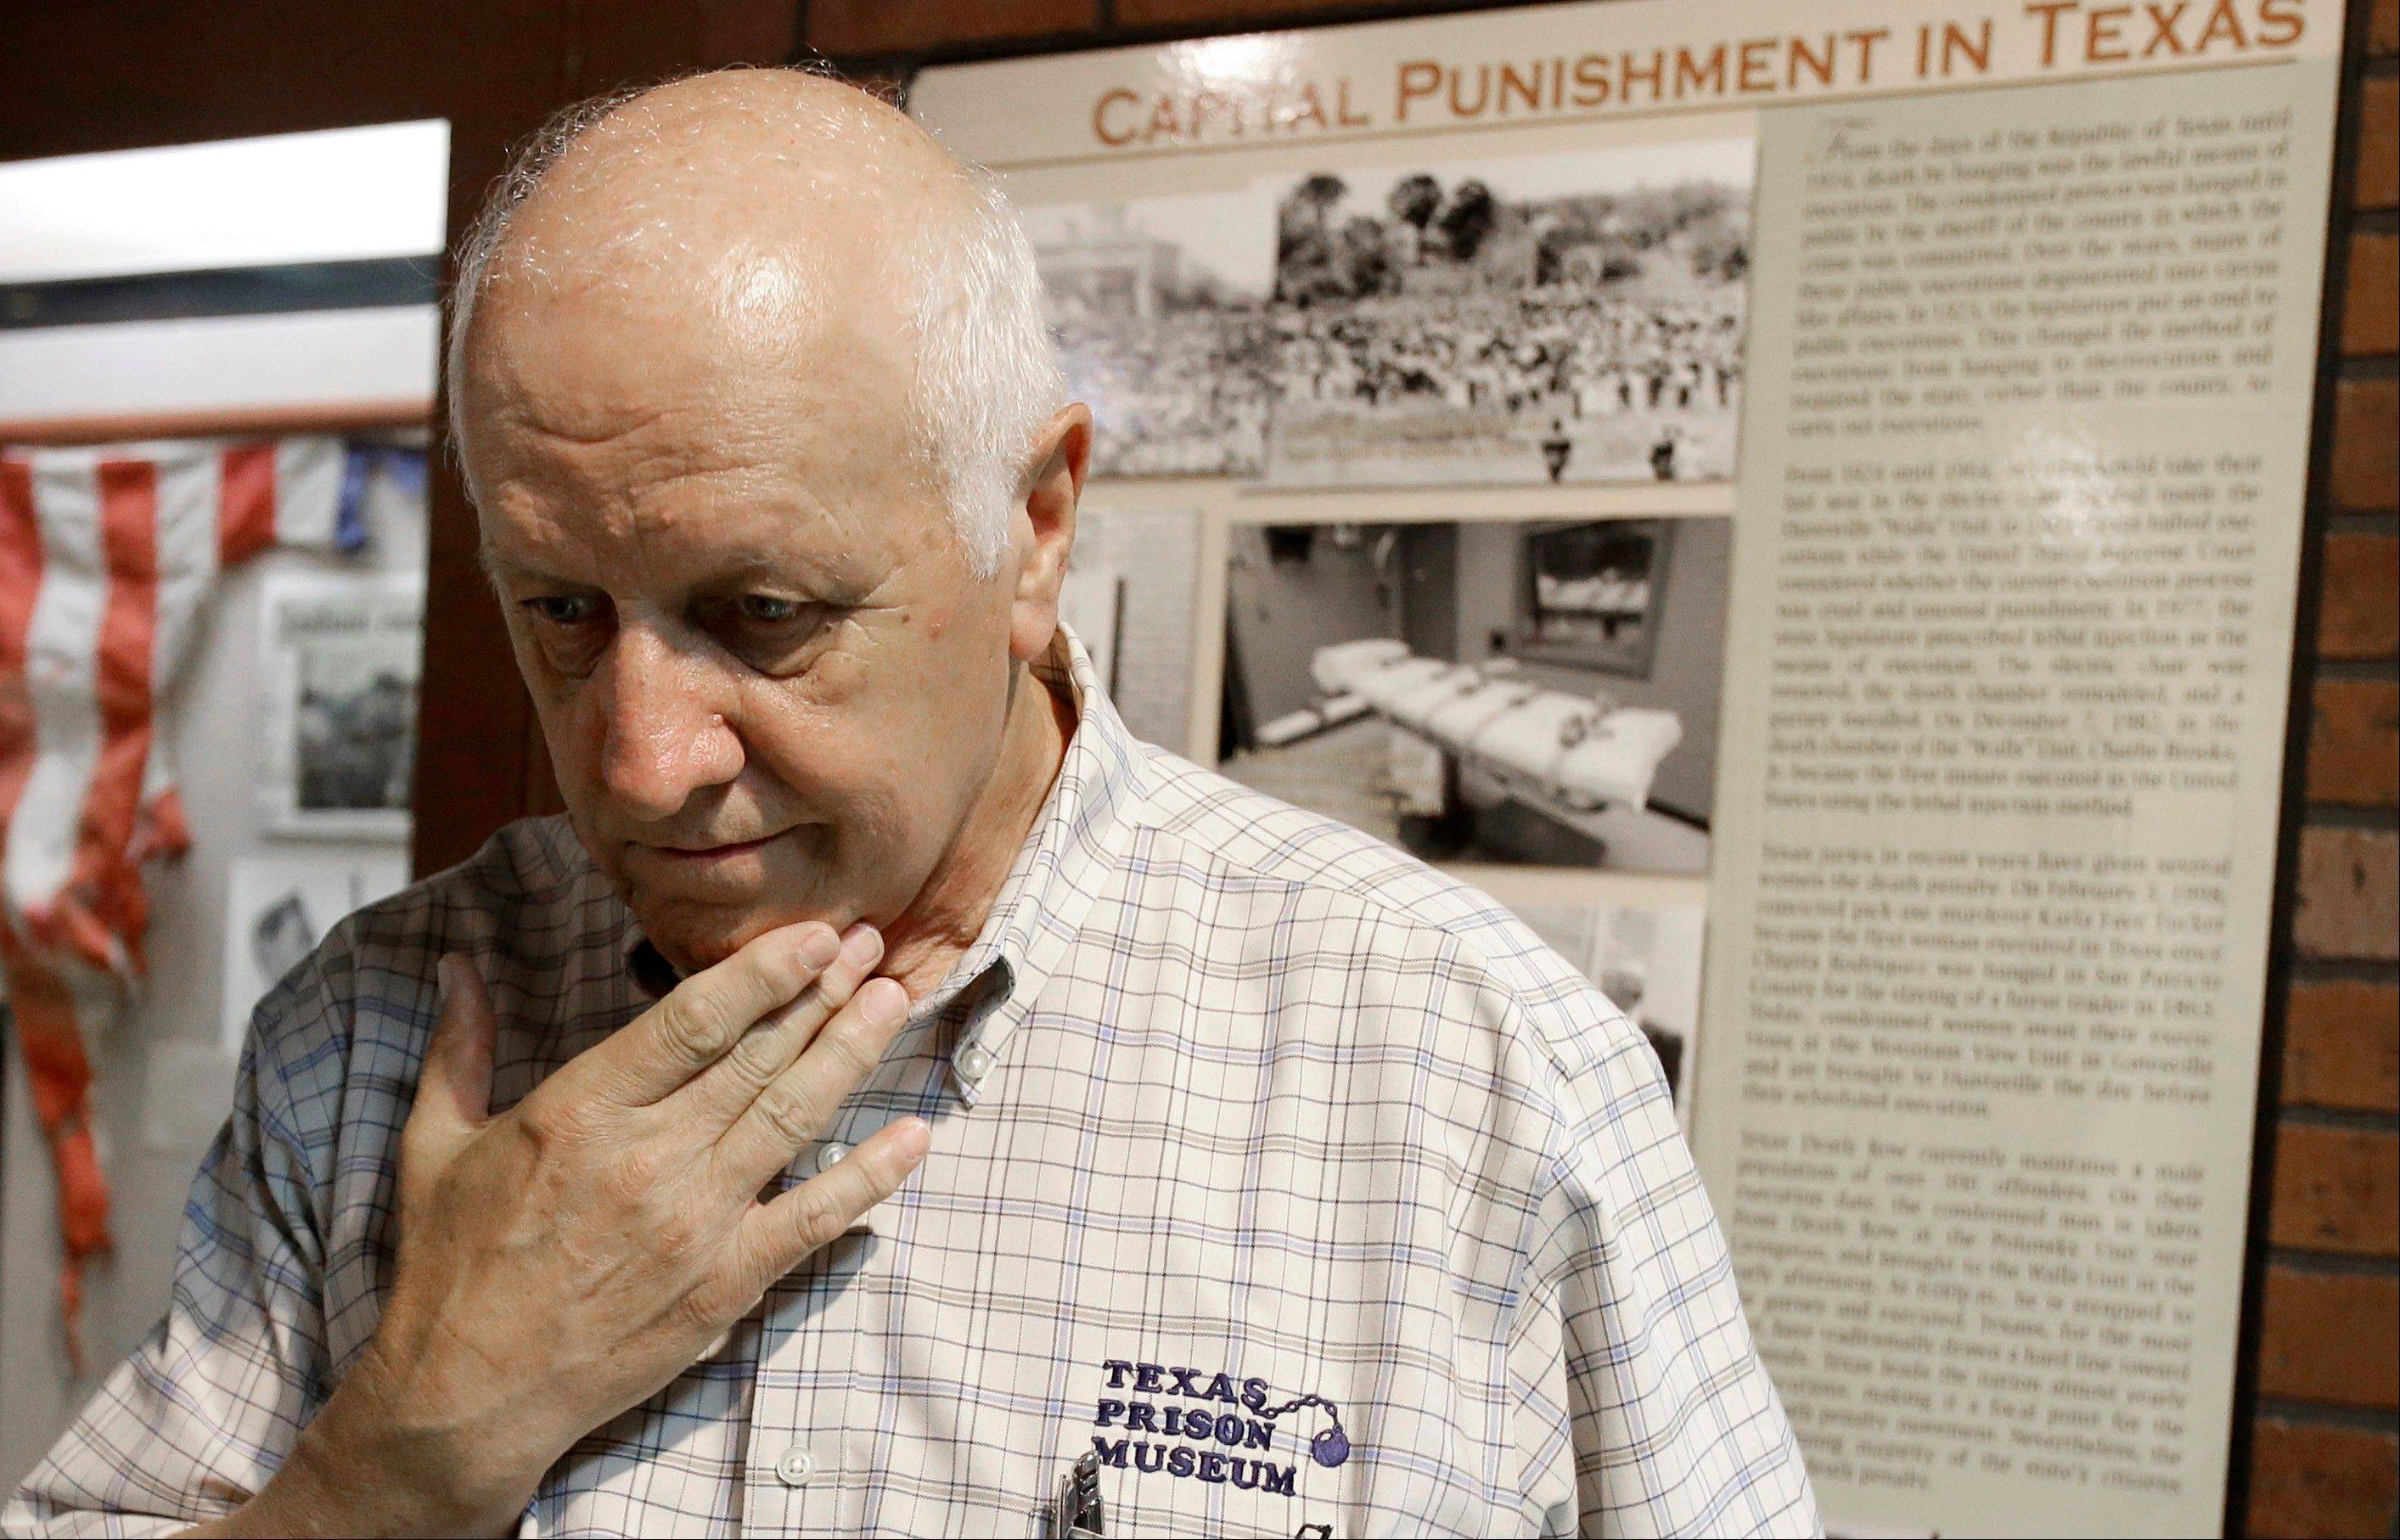 Texas Prison Museum director Jim Willett talks about some of the executions he witnessed as a warden at the Huntsville Unit at the Texas Prison Museum in Huntsville. Willett was a Texas Department of Corrections captain assigned to escort and remain with a mortuary van when Charlie Brooks, the first Texas prisoner executed since a Supreme Court ruling six years earlier allowed the death penalty to resume in the United States, was executed in the early morning hours of Dec. 7, 1982.